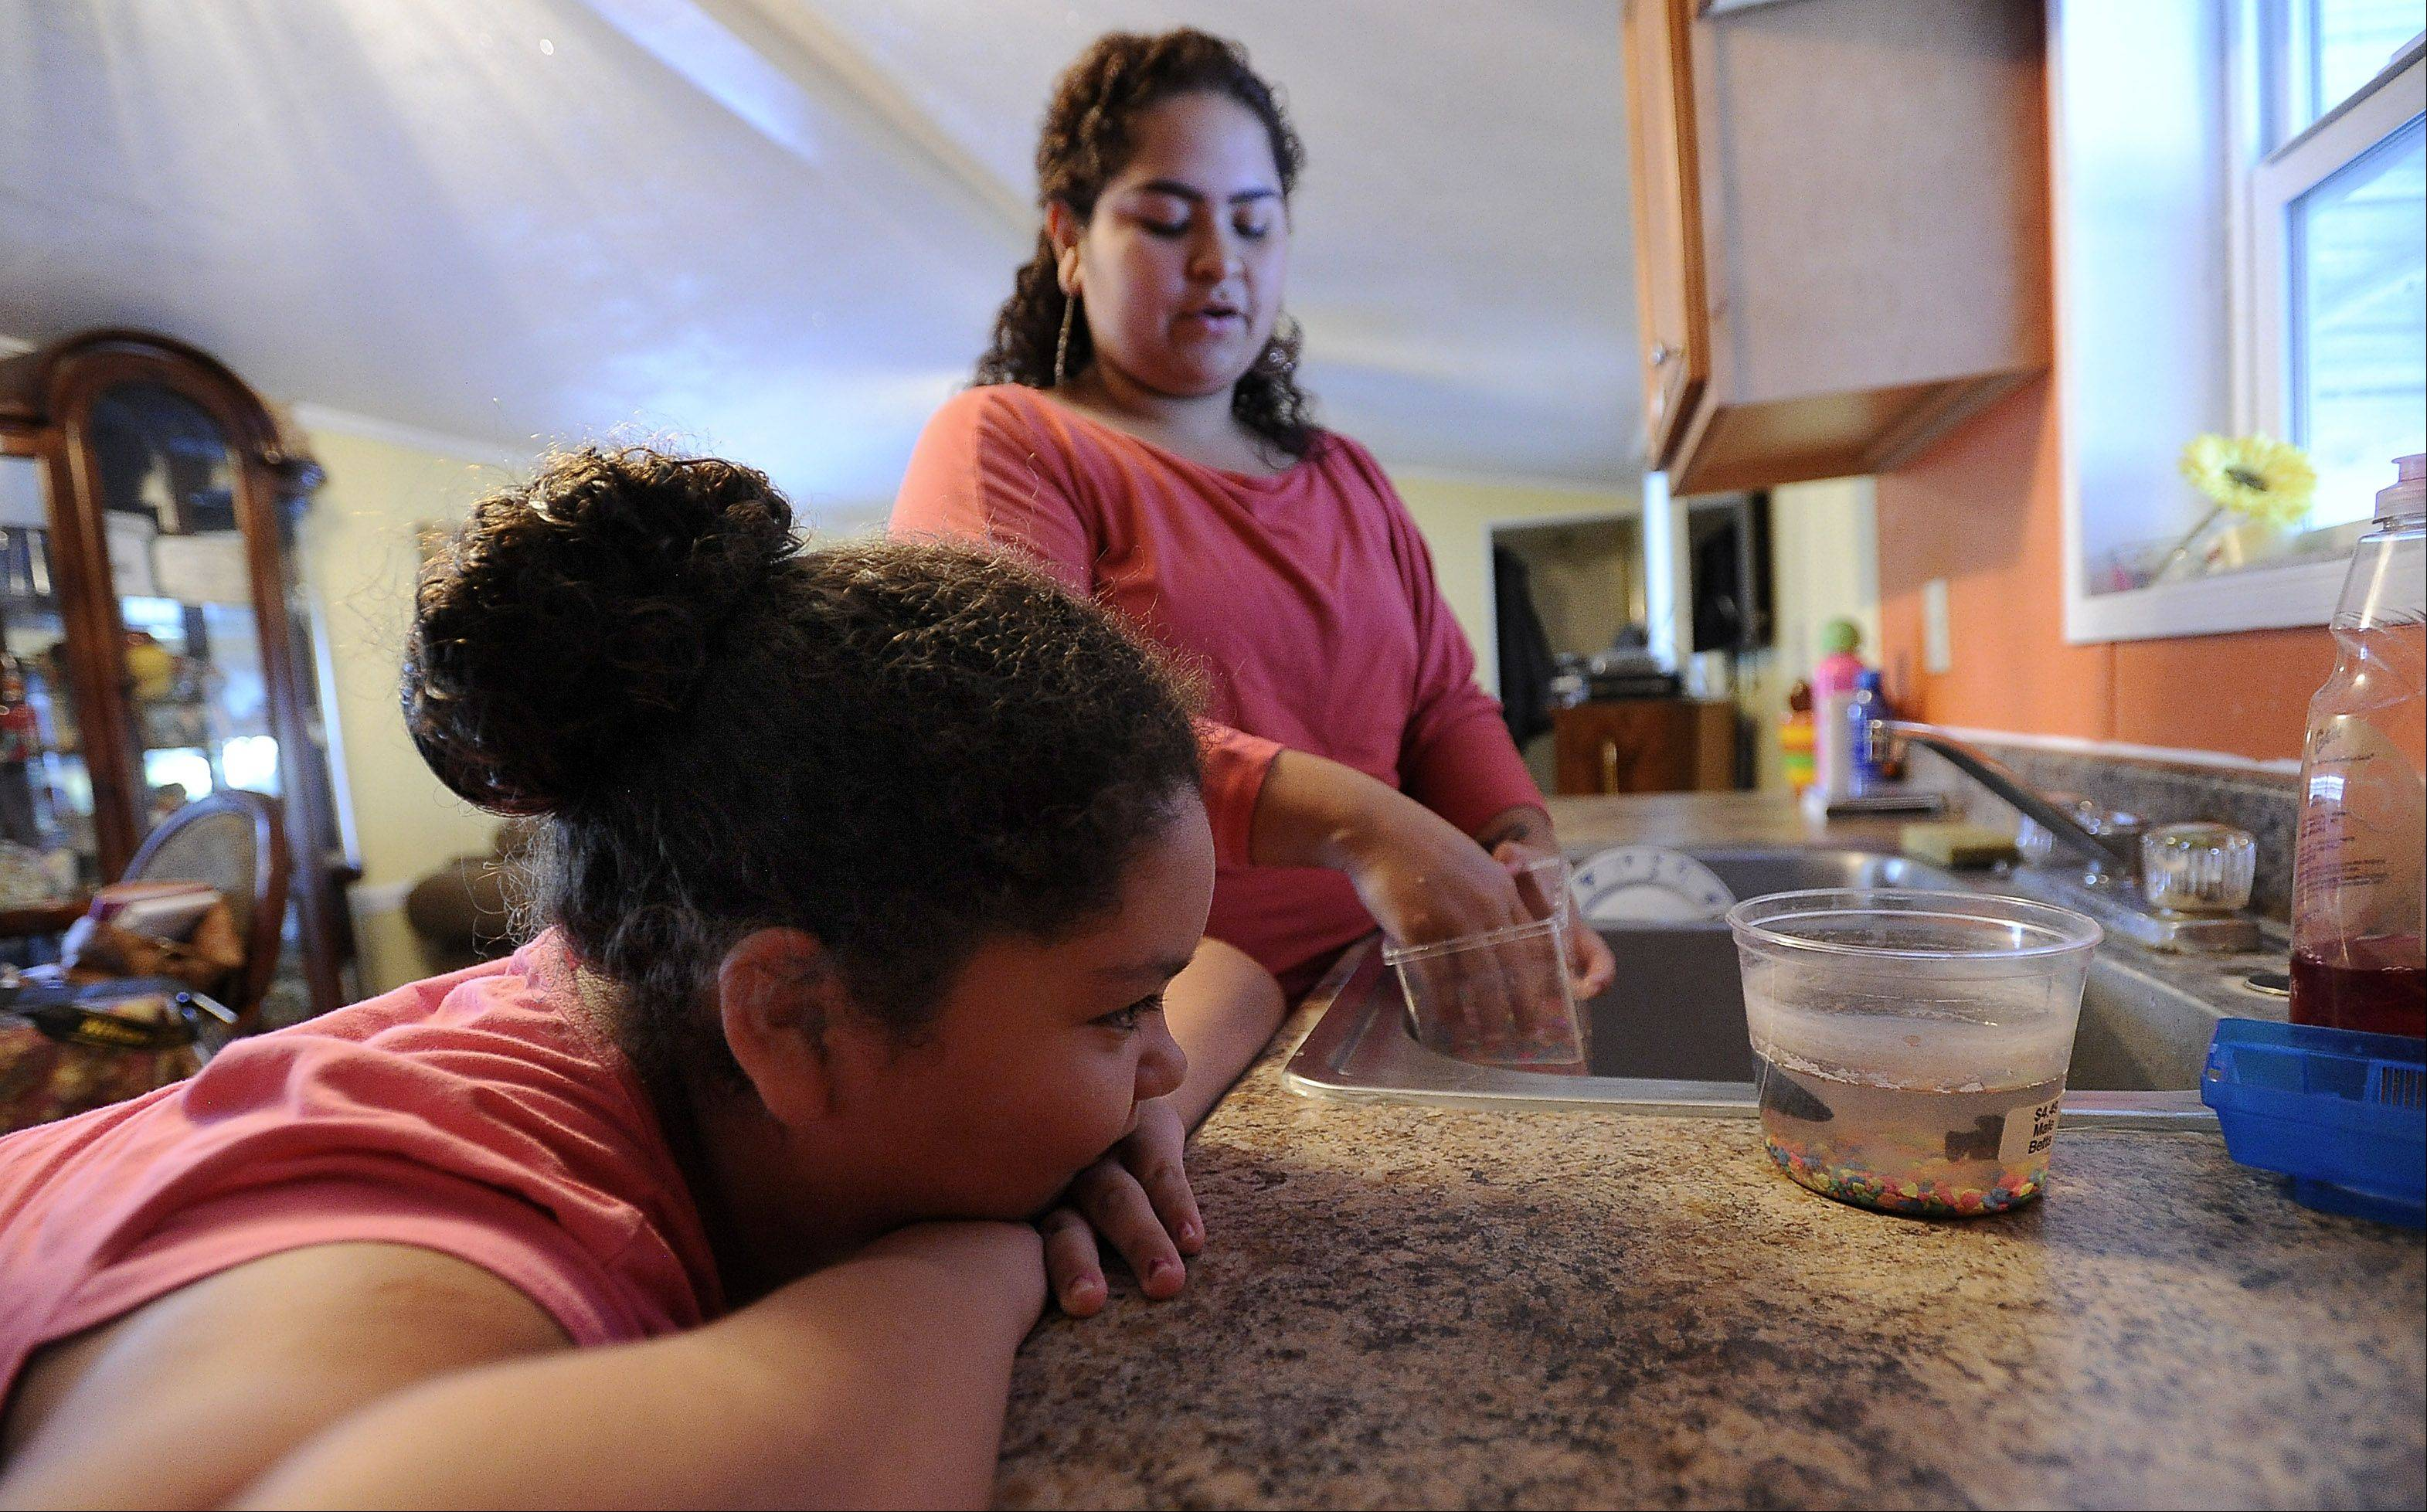 Since losing their mother 2½ years ago, Greta Ramirez, 12, and her sister Karen Ramirez, 22, of Des Plaines have had to take on household duties, which include cleaning the fish tank.